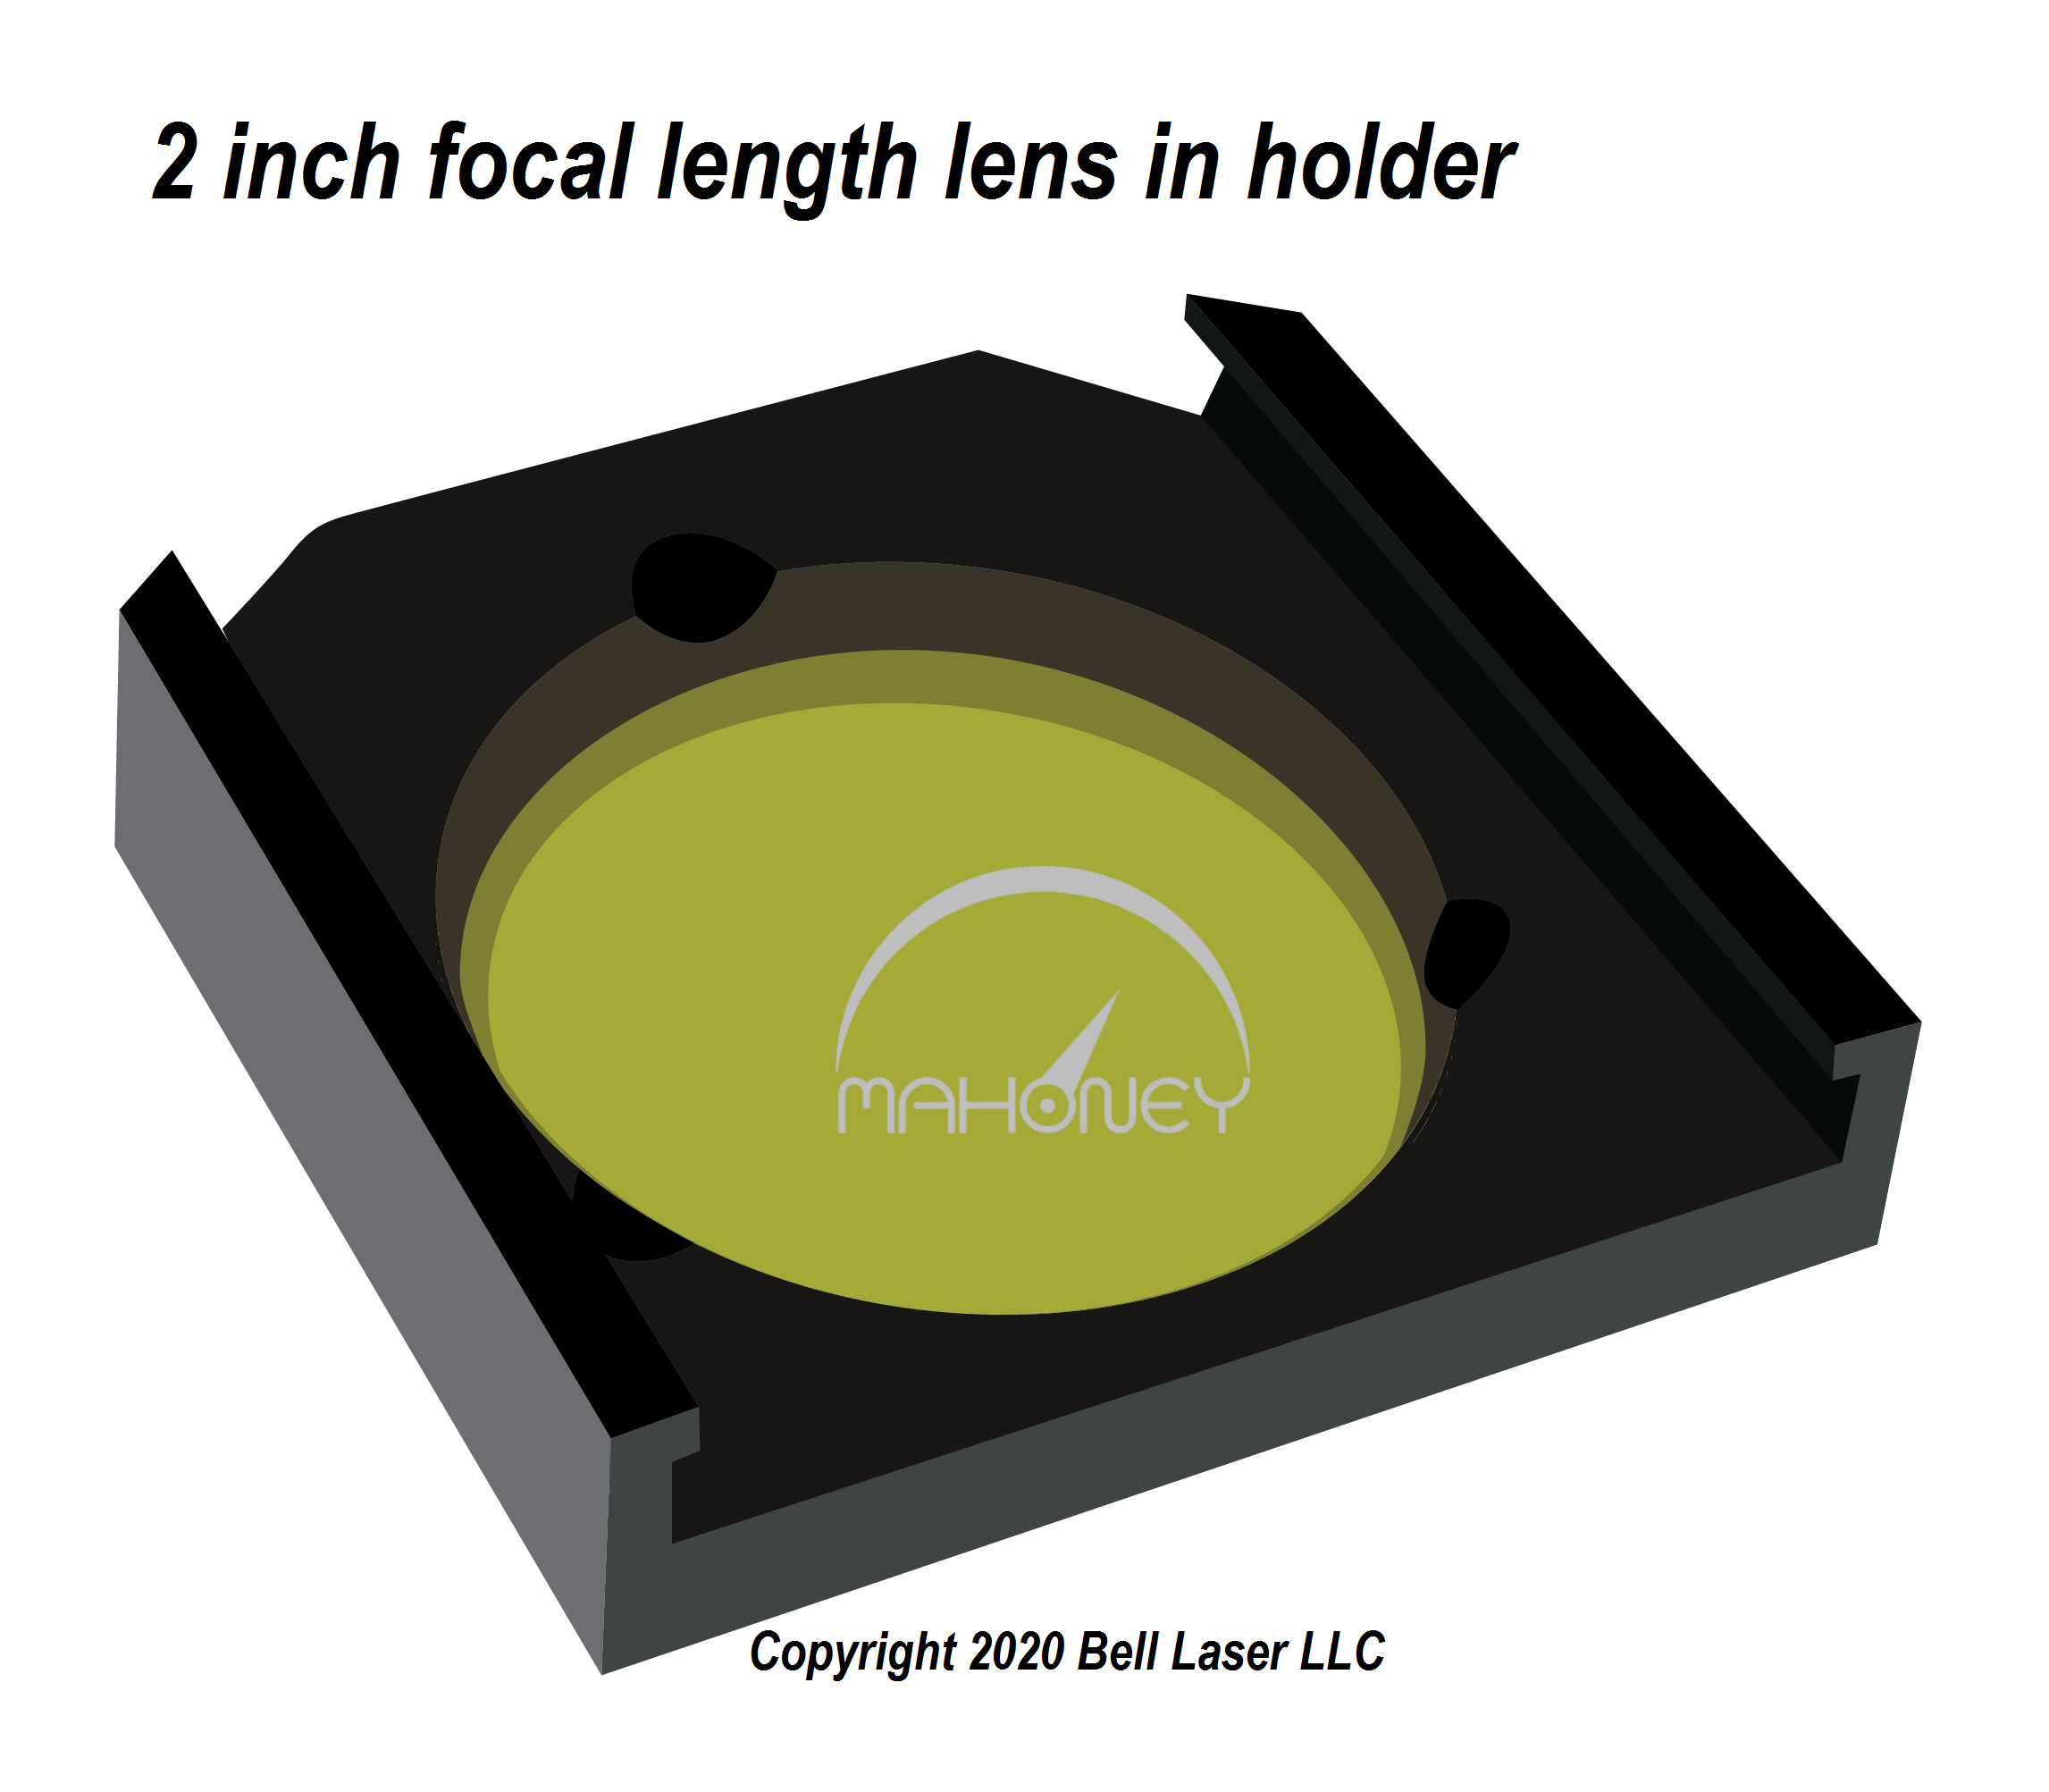 black_Mahoney_2_inch_focal_length_lens_T